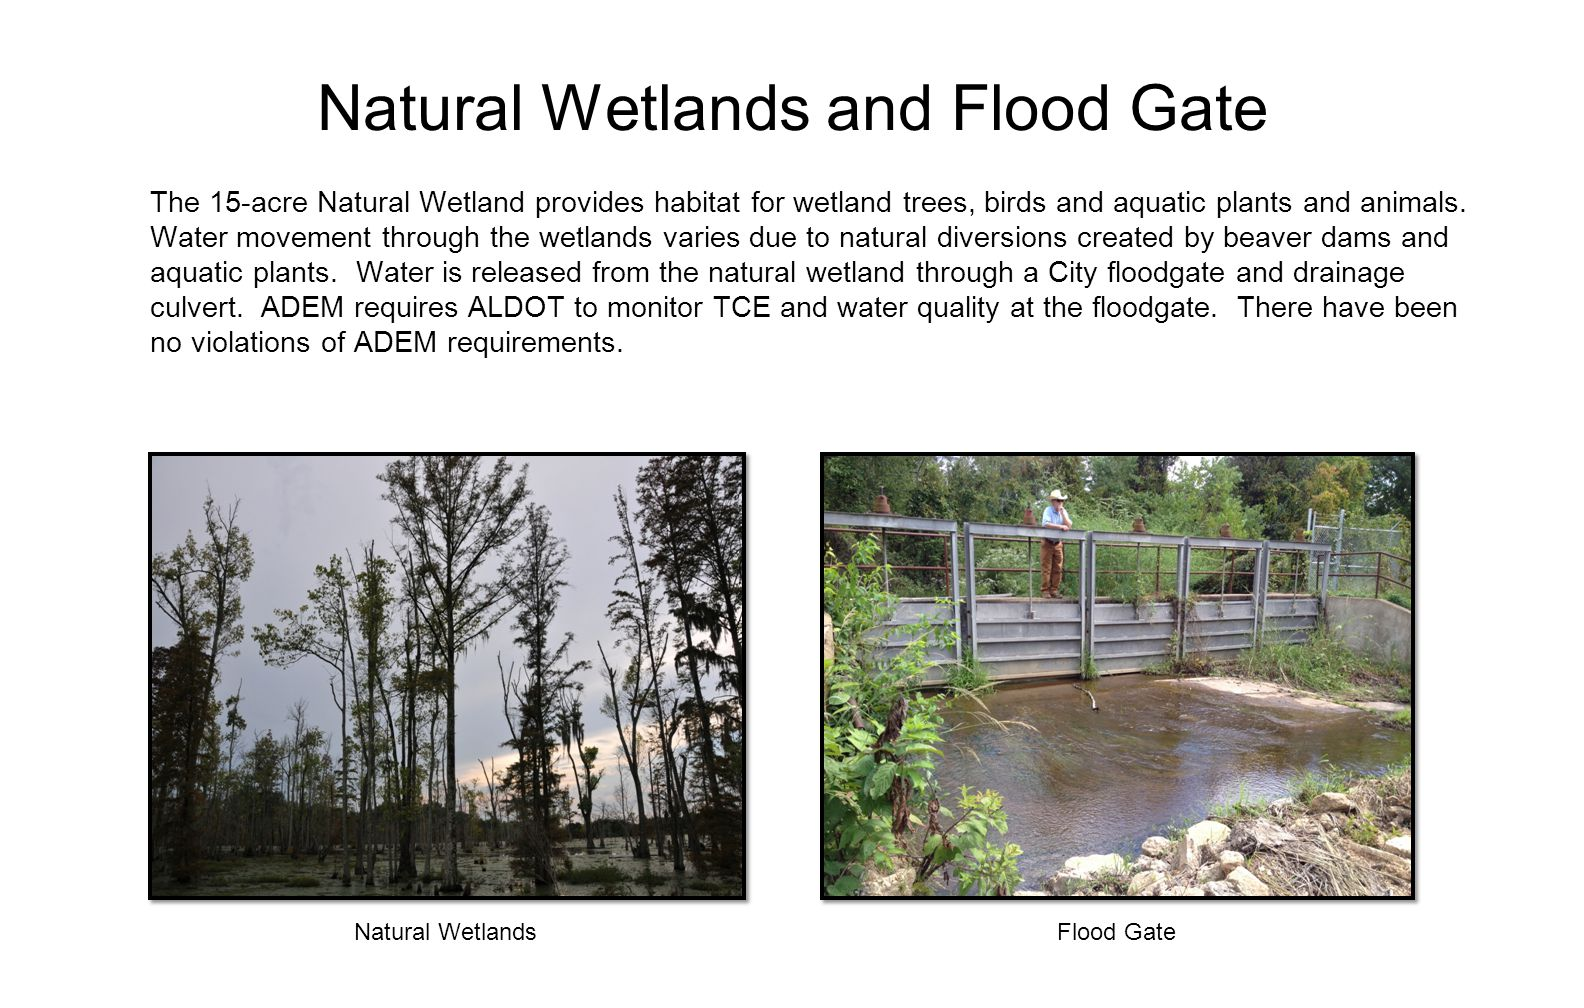 Natural Wetlands and Flood Gate The 15-acre Natural Wetland provides habitat for wetland trees, birds and aquatic plants and animals.